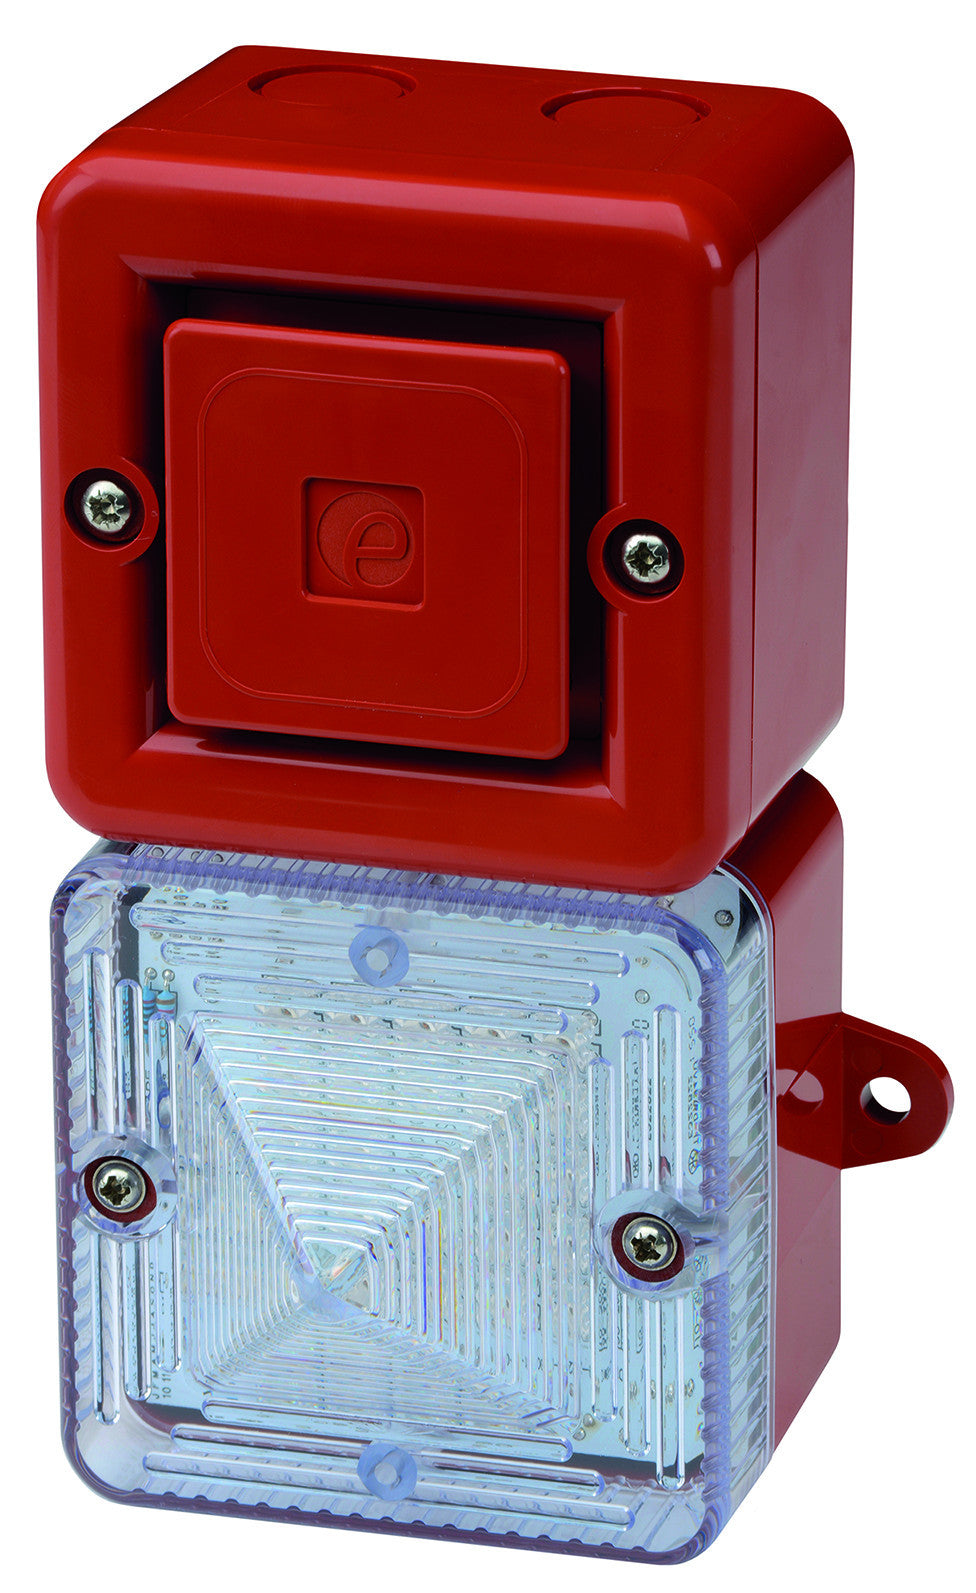 E2S E2S SONFL1H Sounder with LED Beacon - BNR Industrial